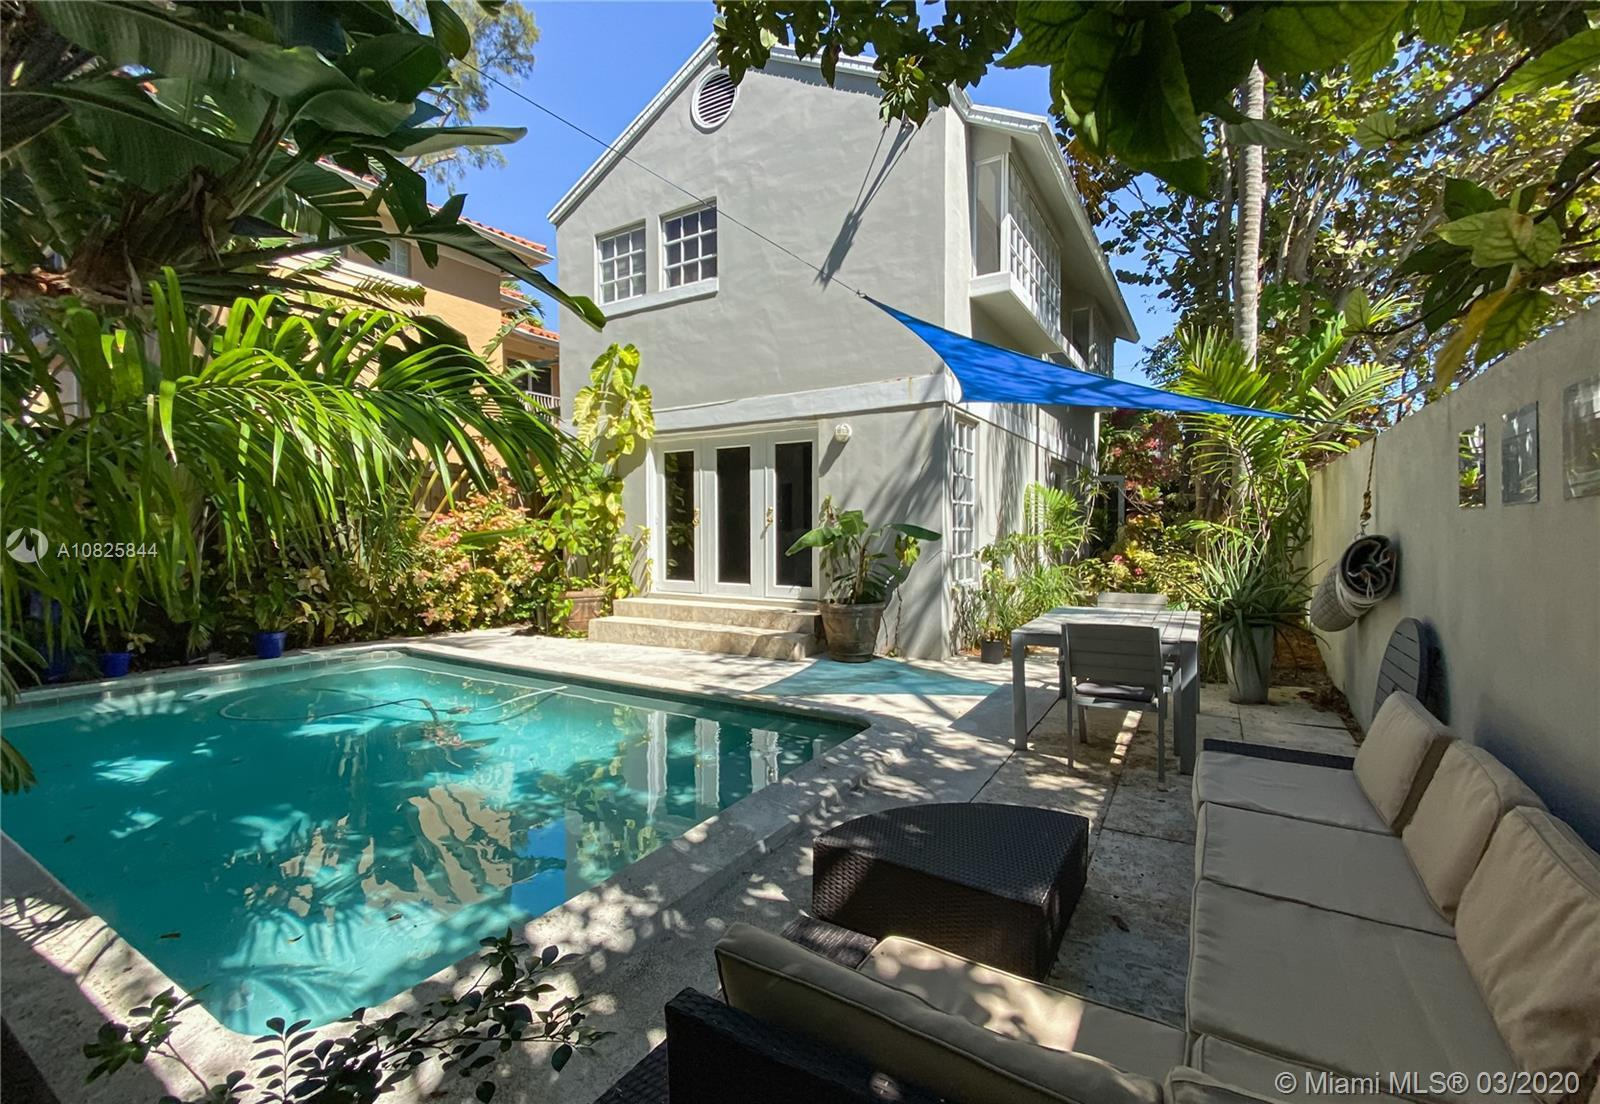 Welcome to paradise! One of a kind walled and gated free-standing townhome with large swimming pool